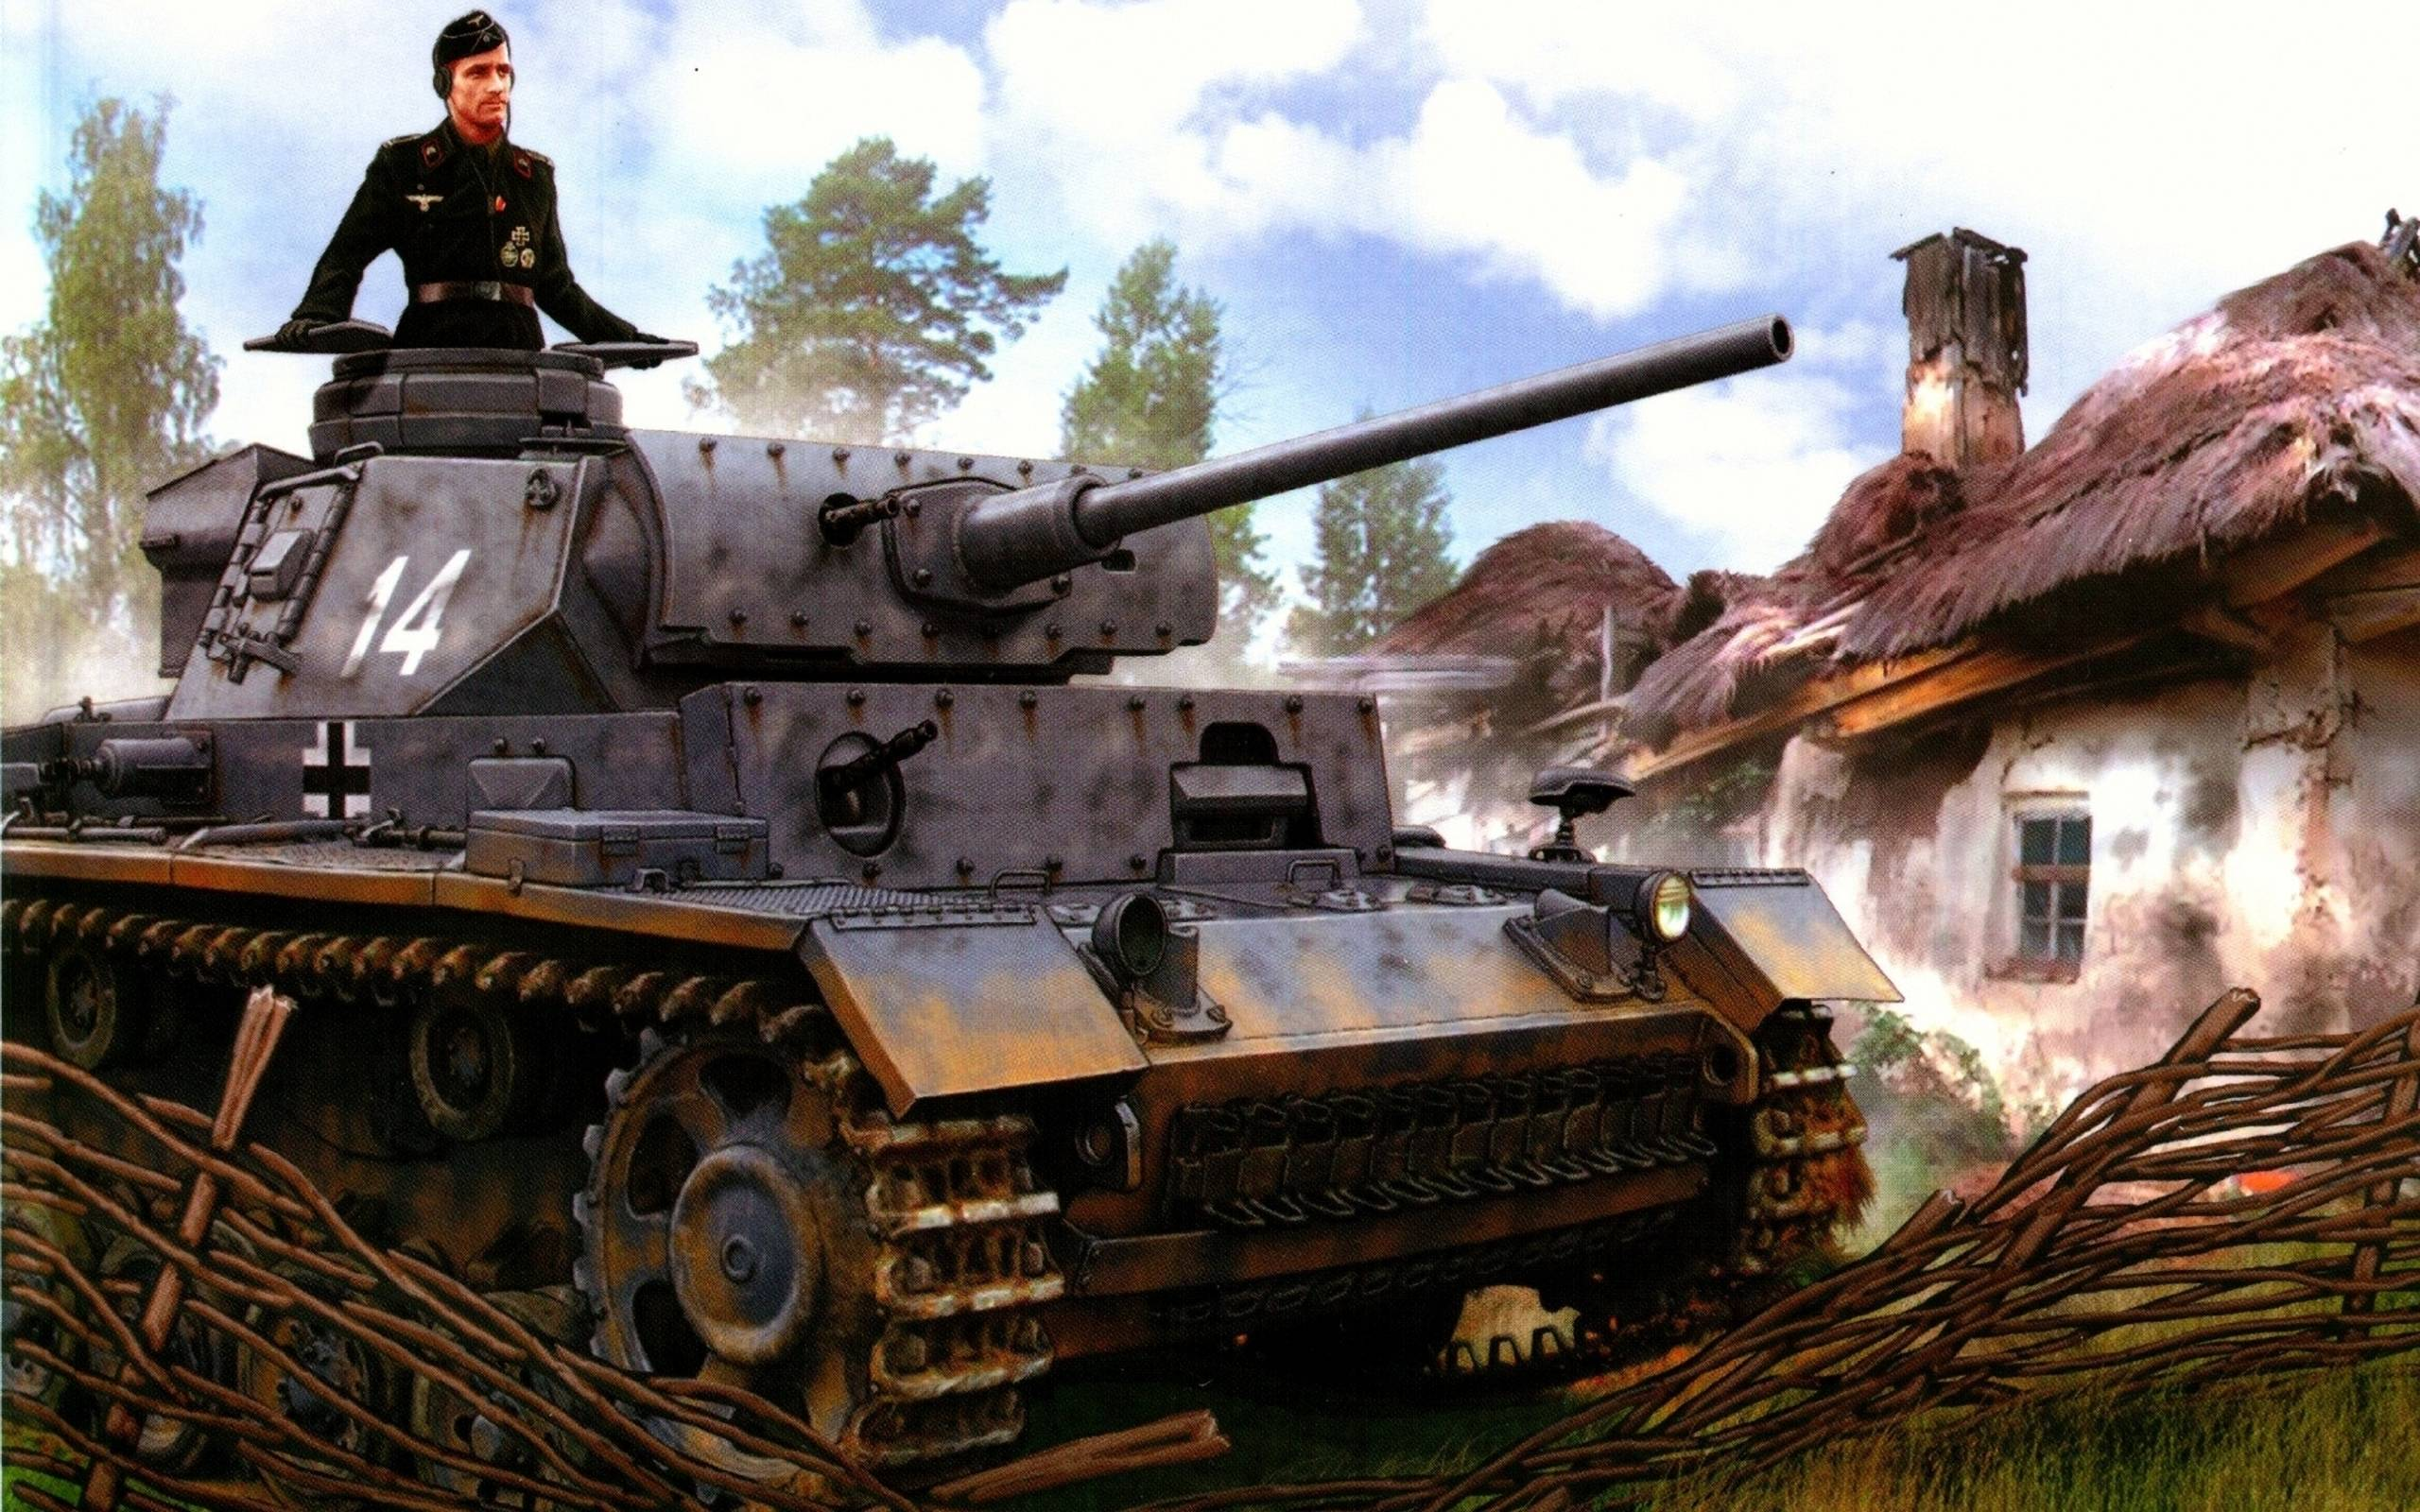 Download wallpapers panzer iii, ww2, military art free desktop